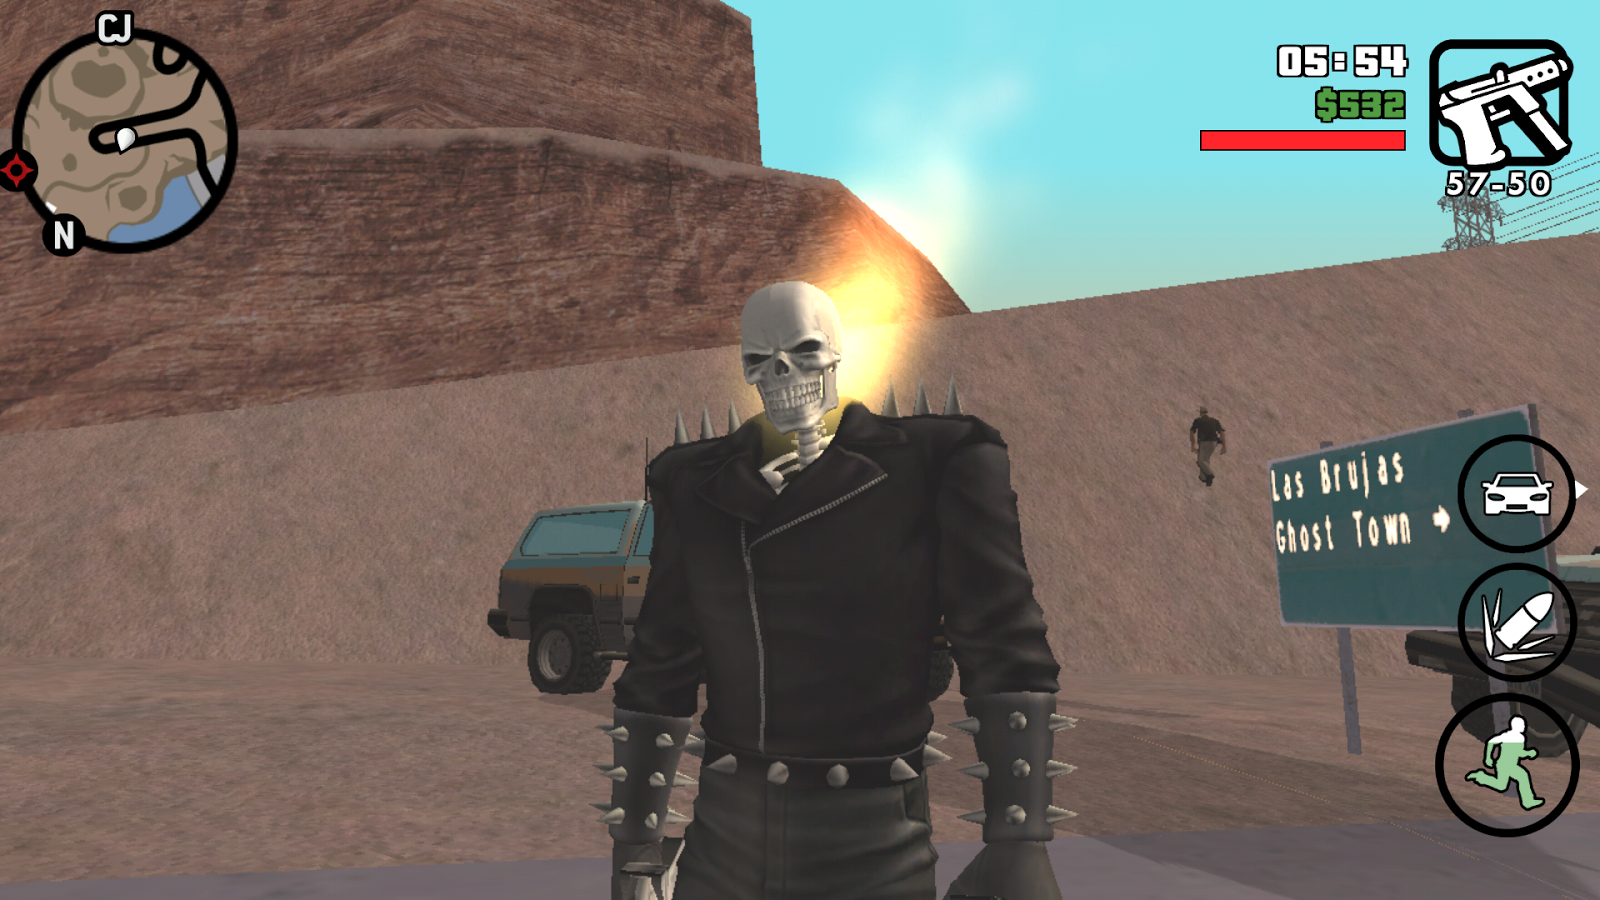 Ghost Rider mod in gta sa Android